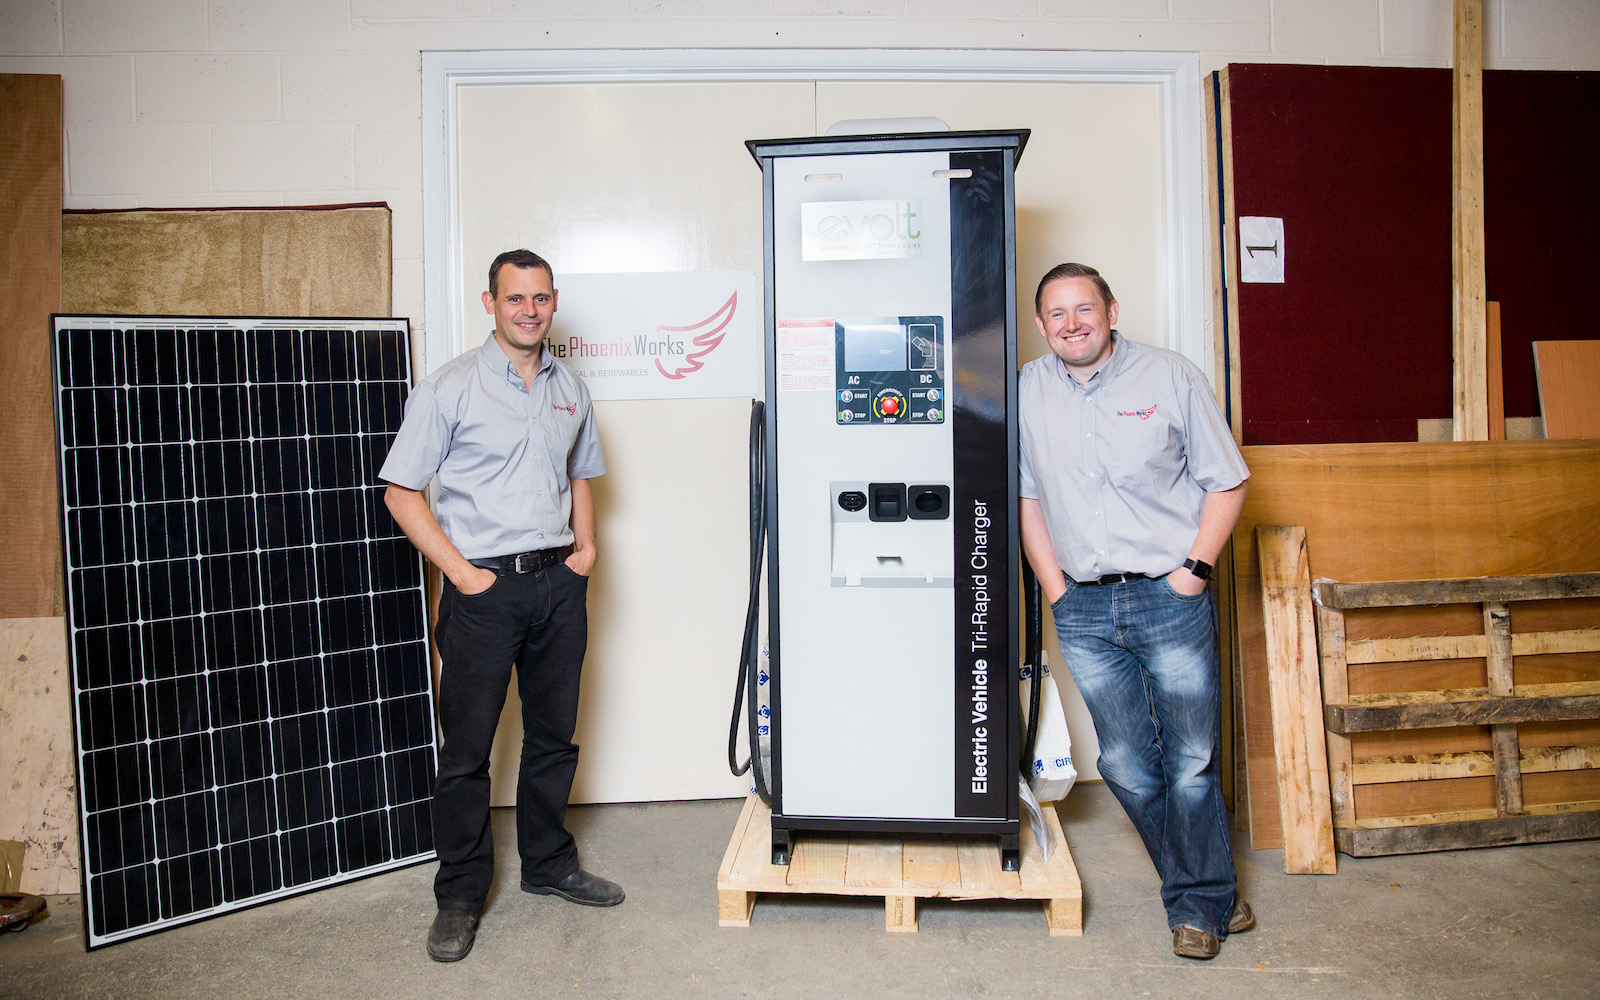 The Phoenix Works continues electric vehicle charging drive with Tonik Energy offer